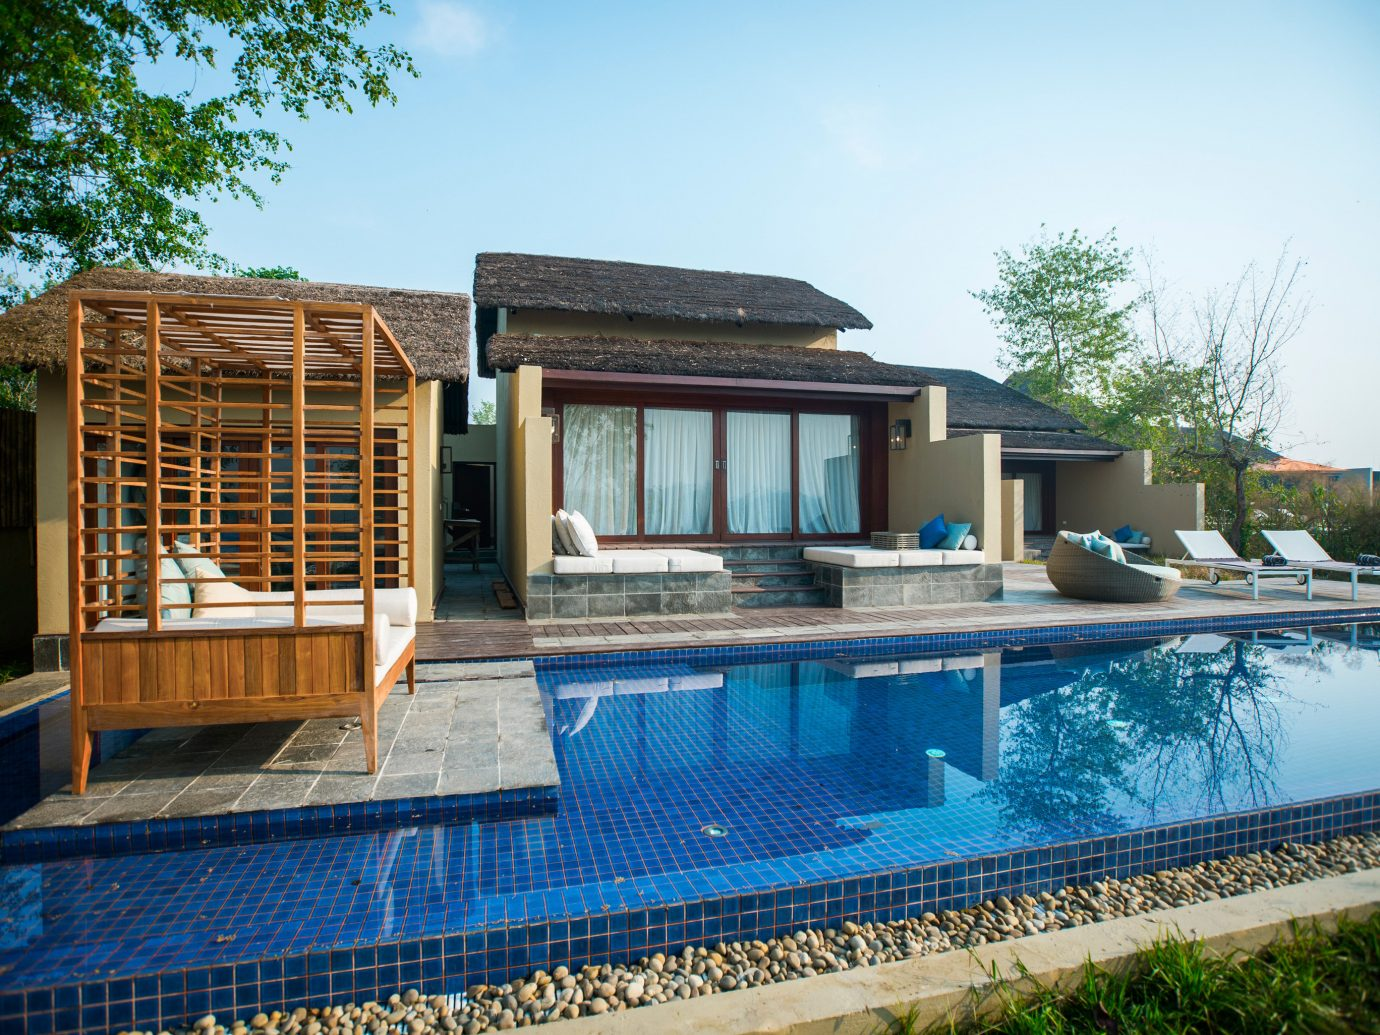 Hotels Safari sky tree outdoor swimming pool building property house estate Villa backyard Resort home real estate facade condominium outdoor structure cottage mansion